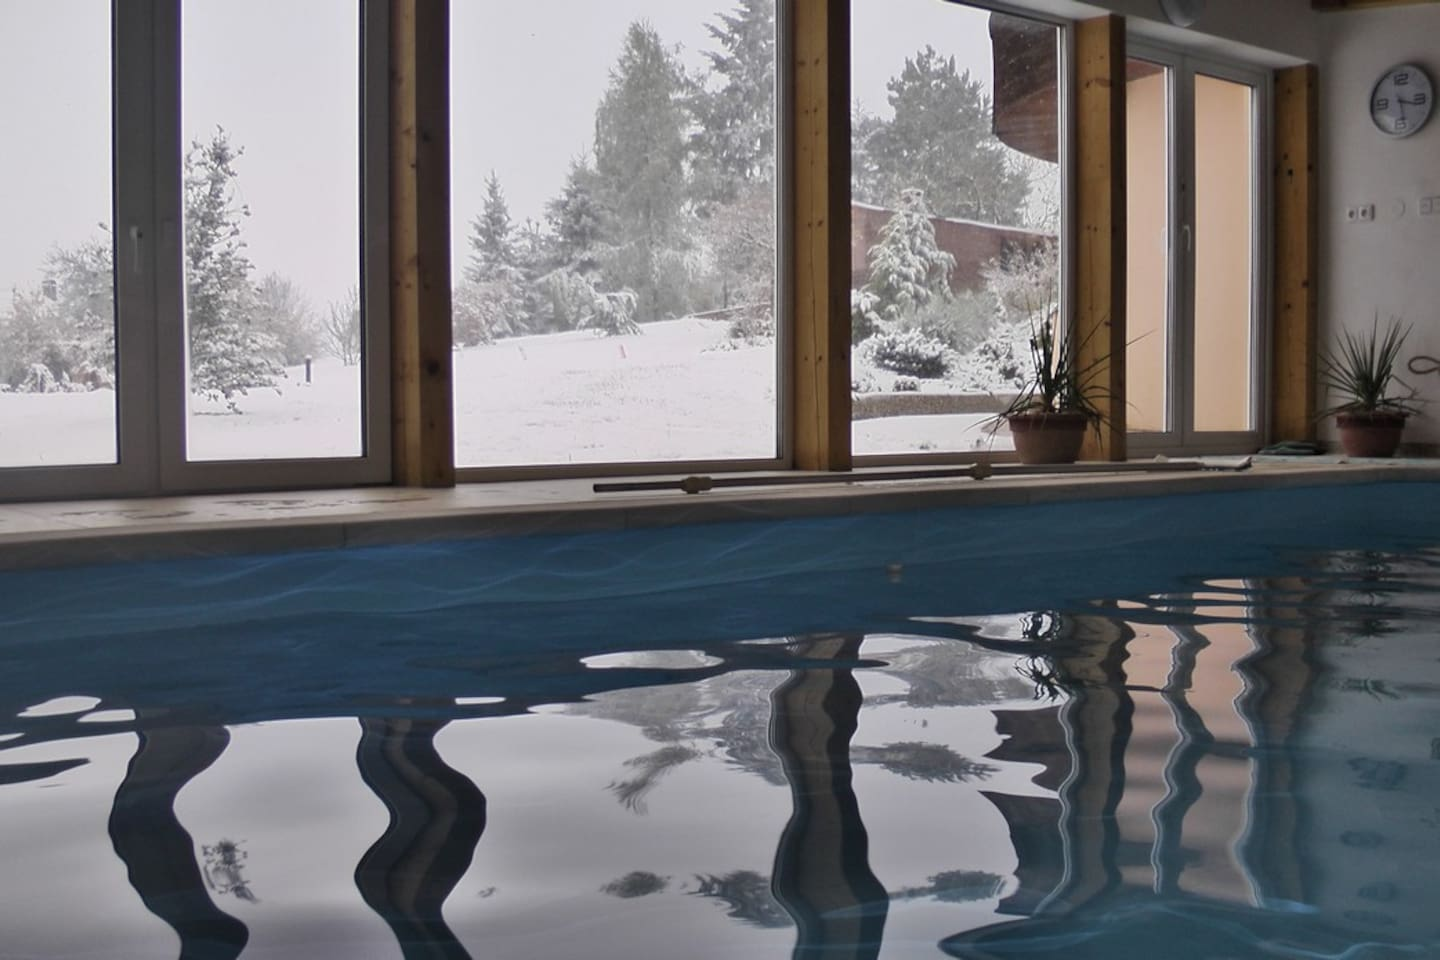 Swimming pool house in winter